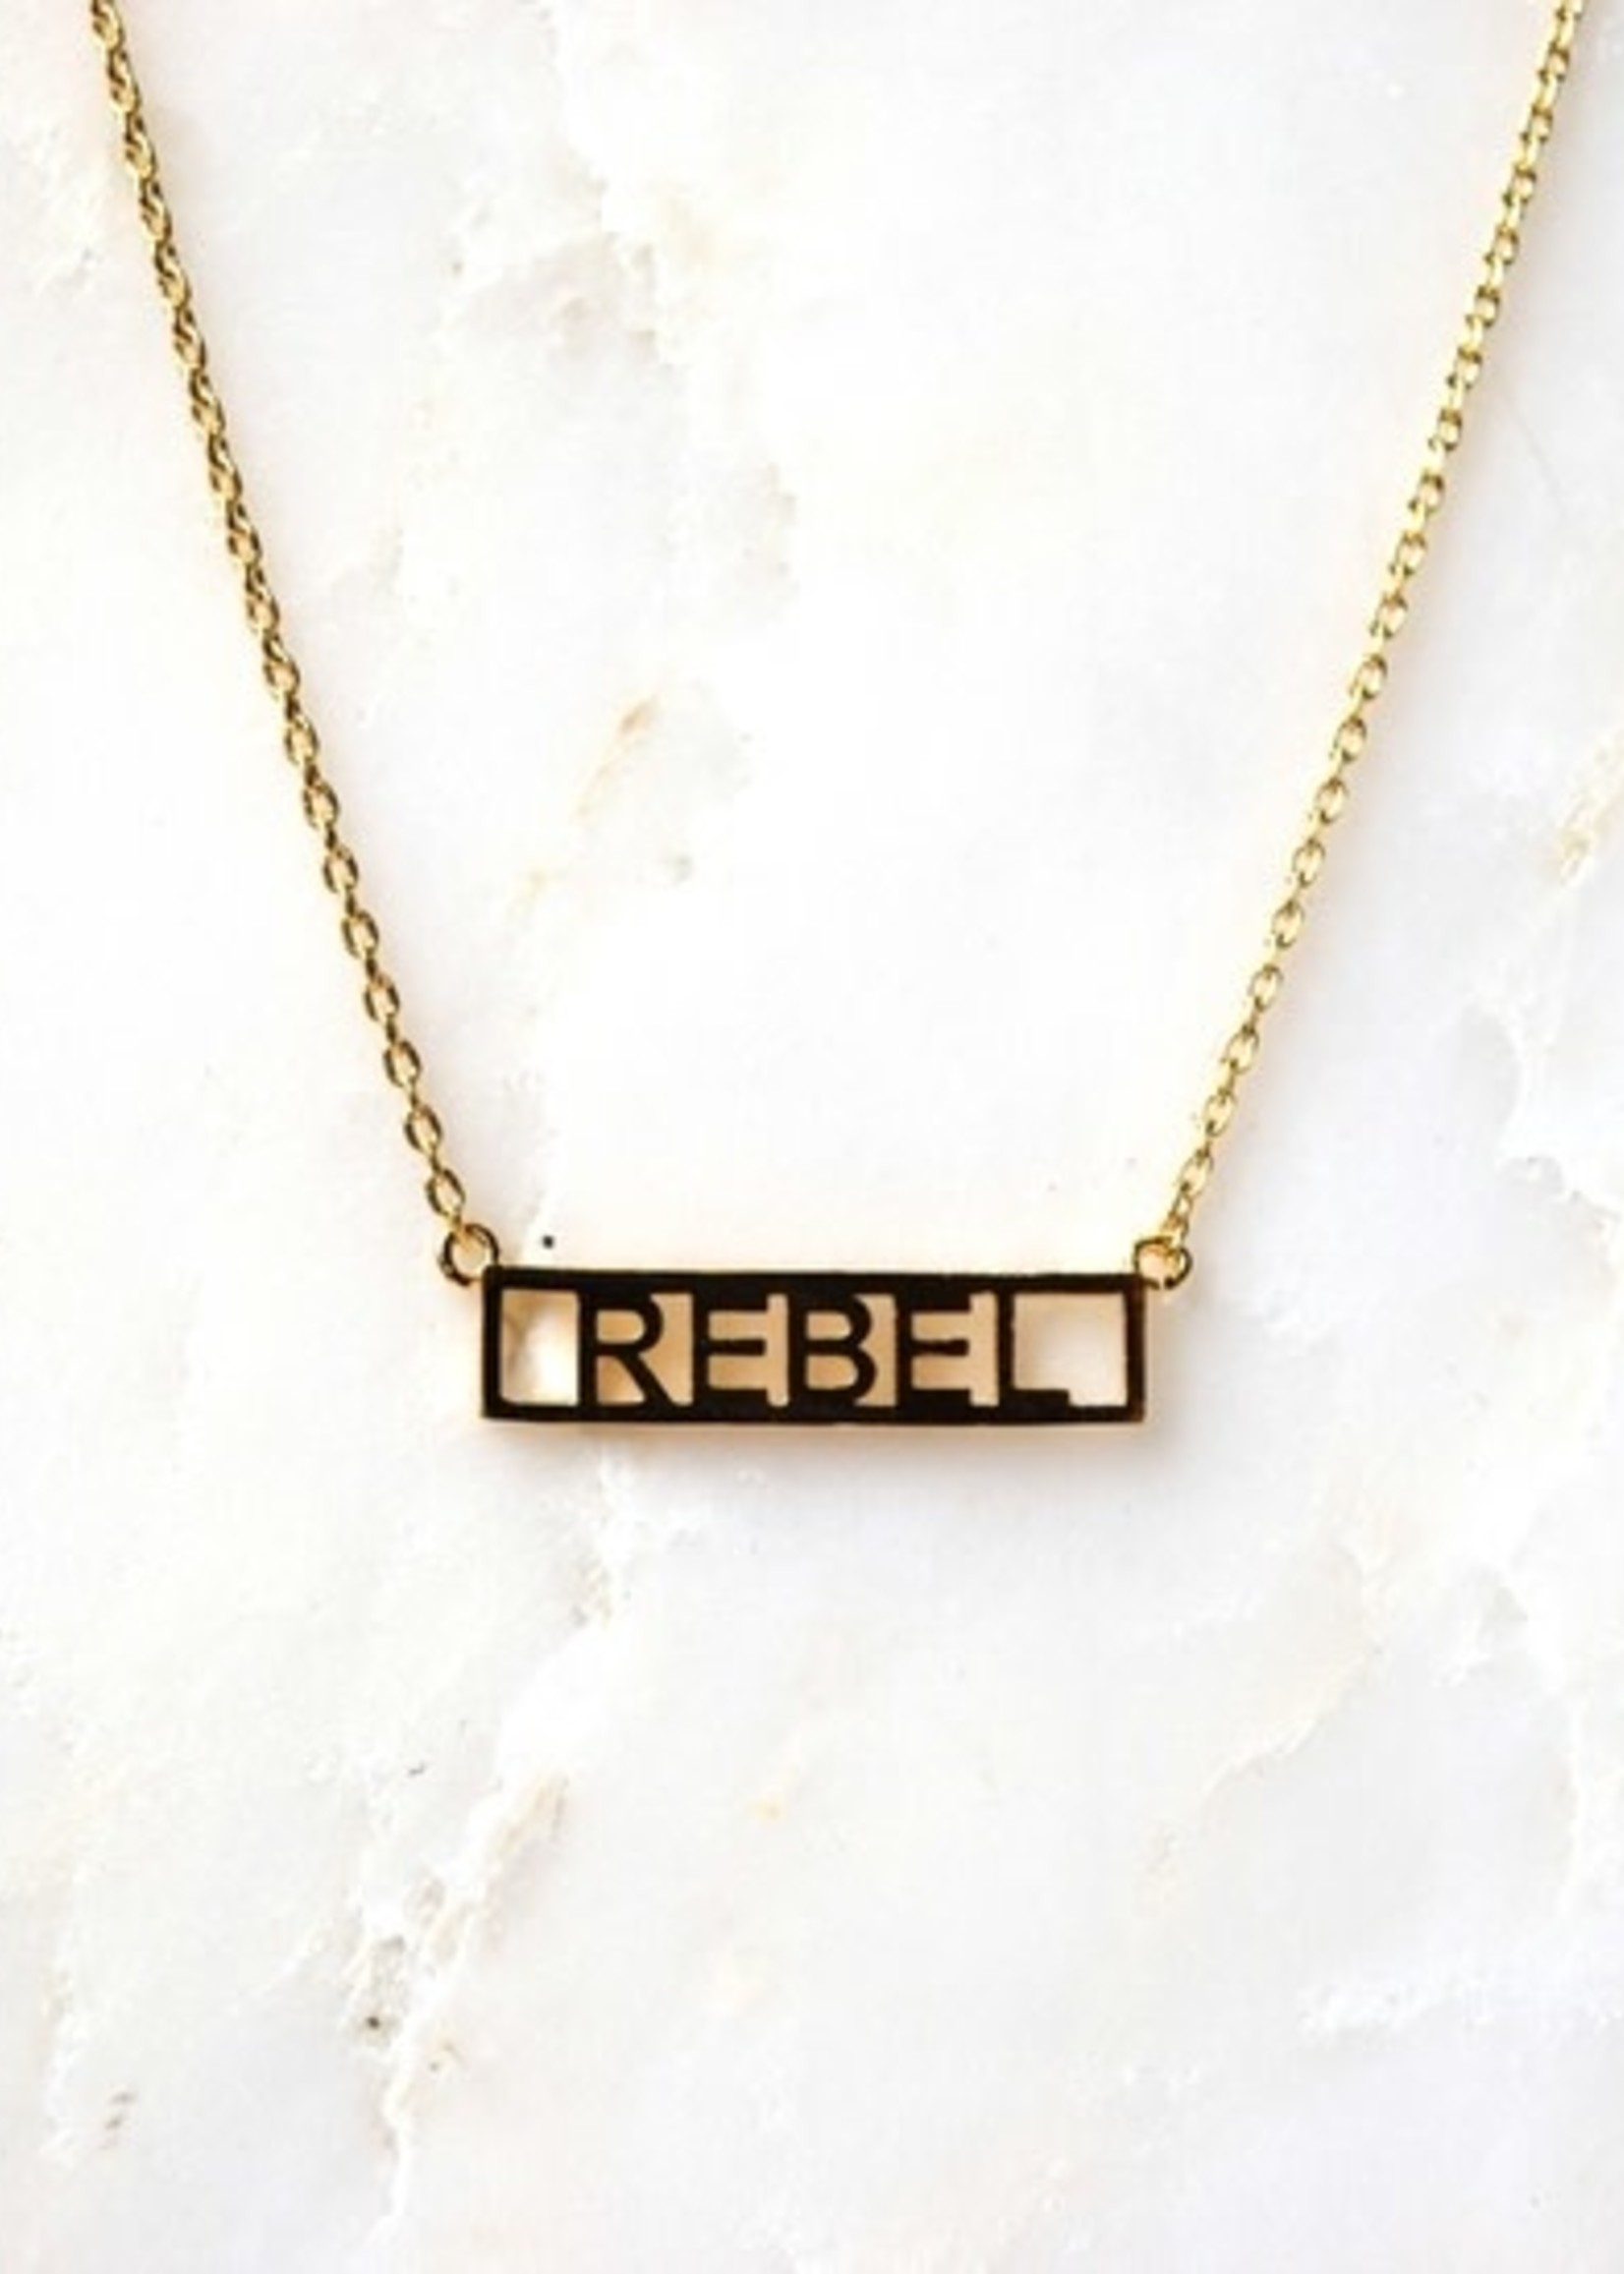 HE SAID SHE SAID HE SAID, SHE SAID NECKLACE - REBEL